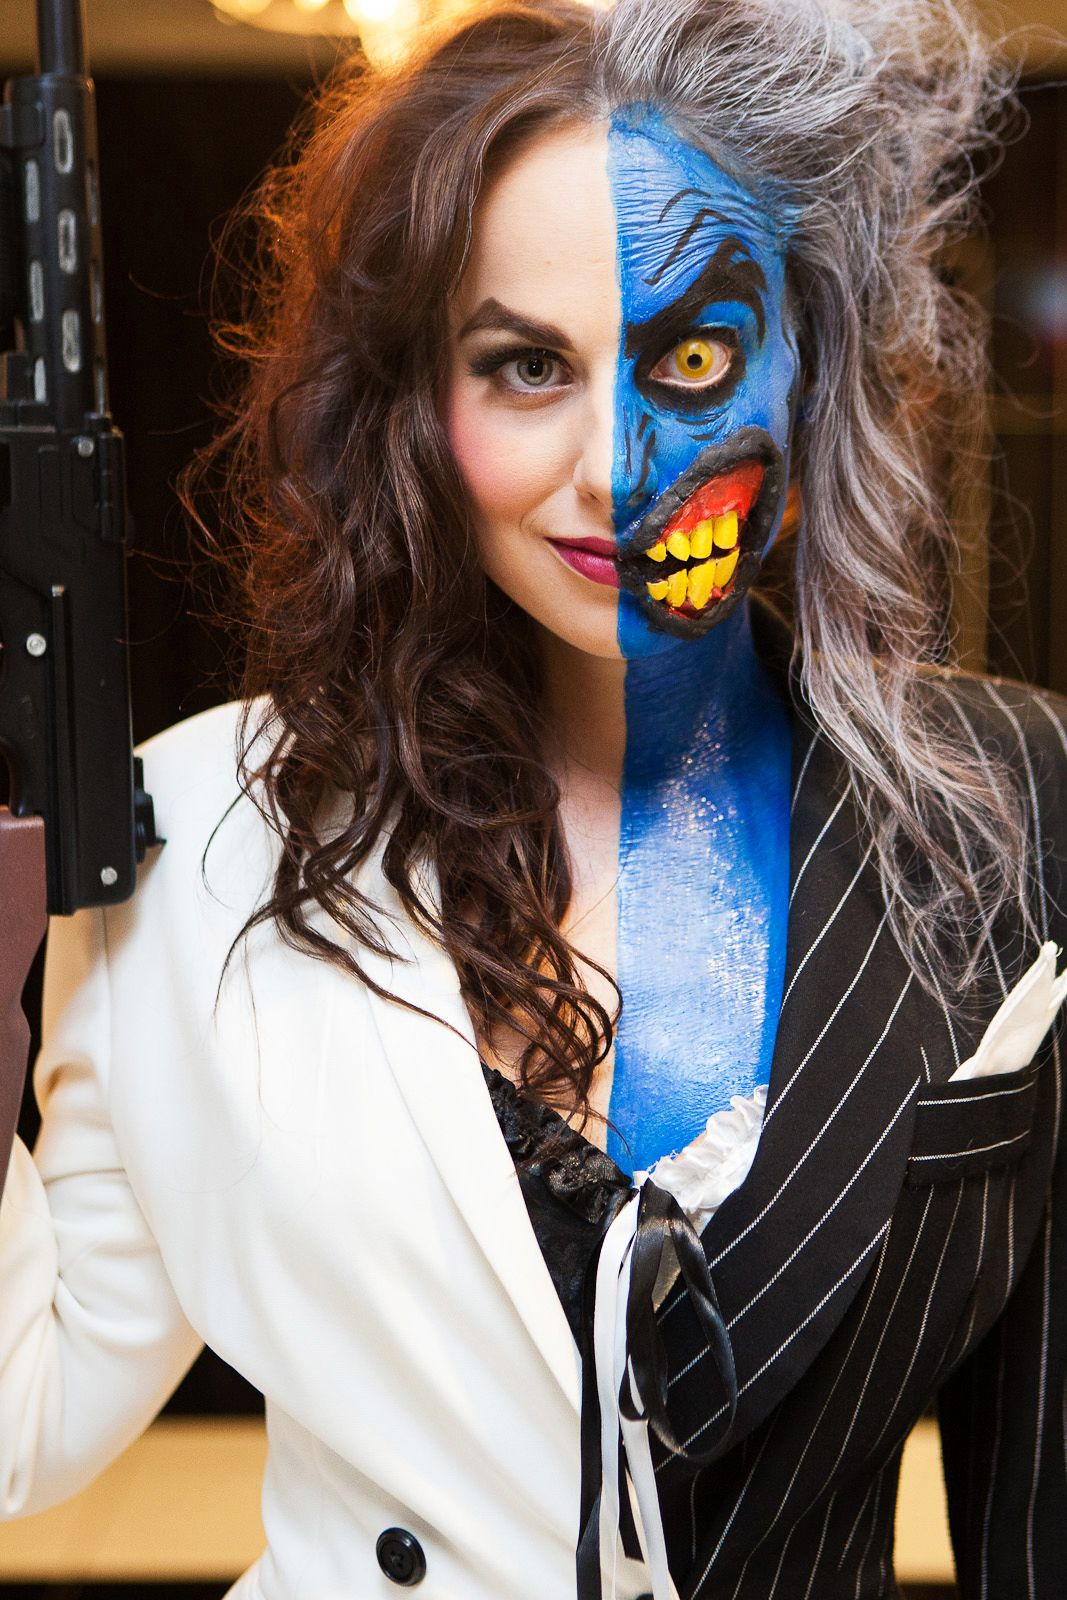 Lady twoface cosplay by Megan Marie Cosplay, Best